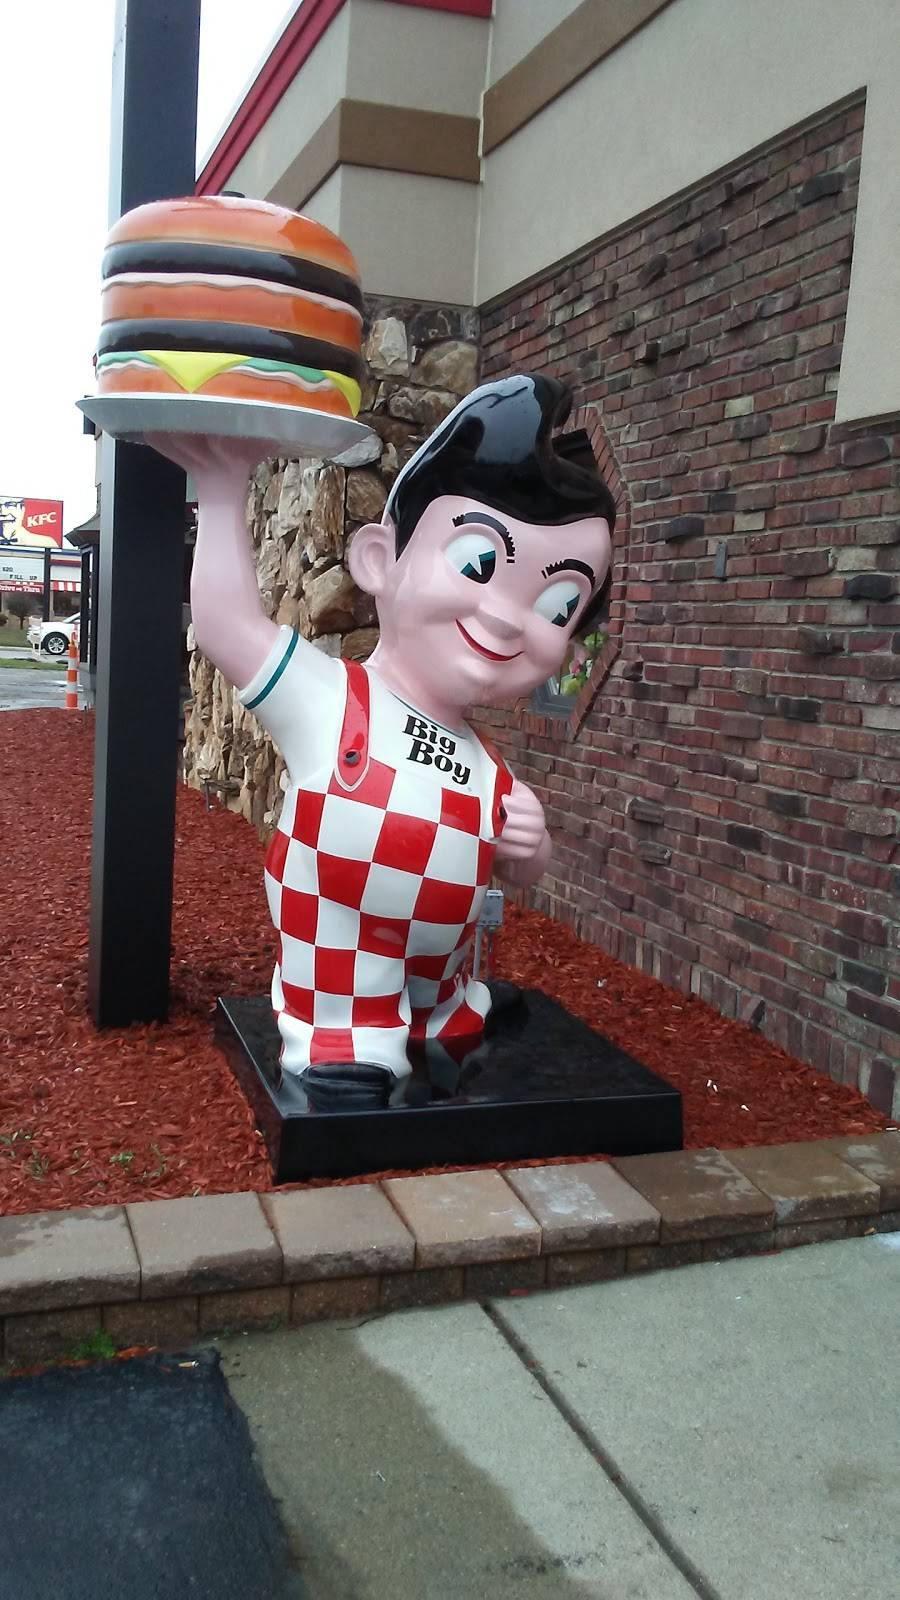 Big Boy | restaurant | 28340 Ford Rd, Garden City, MI 48135, USA | 7344252360 OR +1 734-425-2360